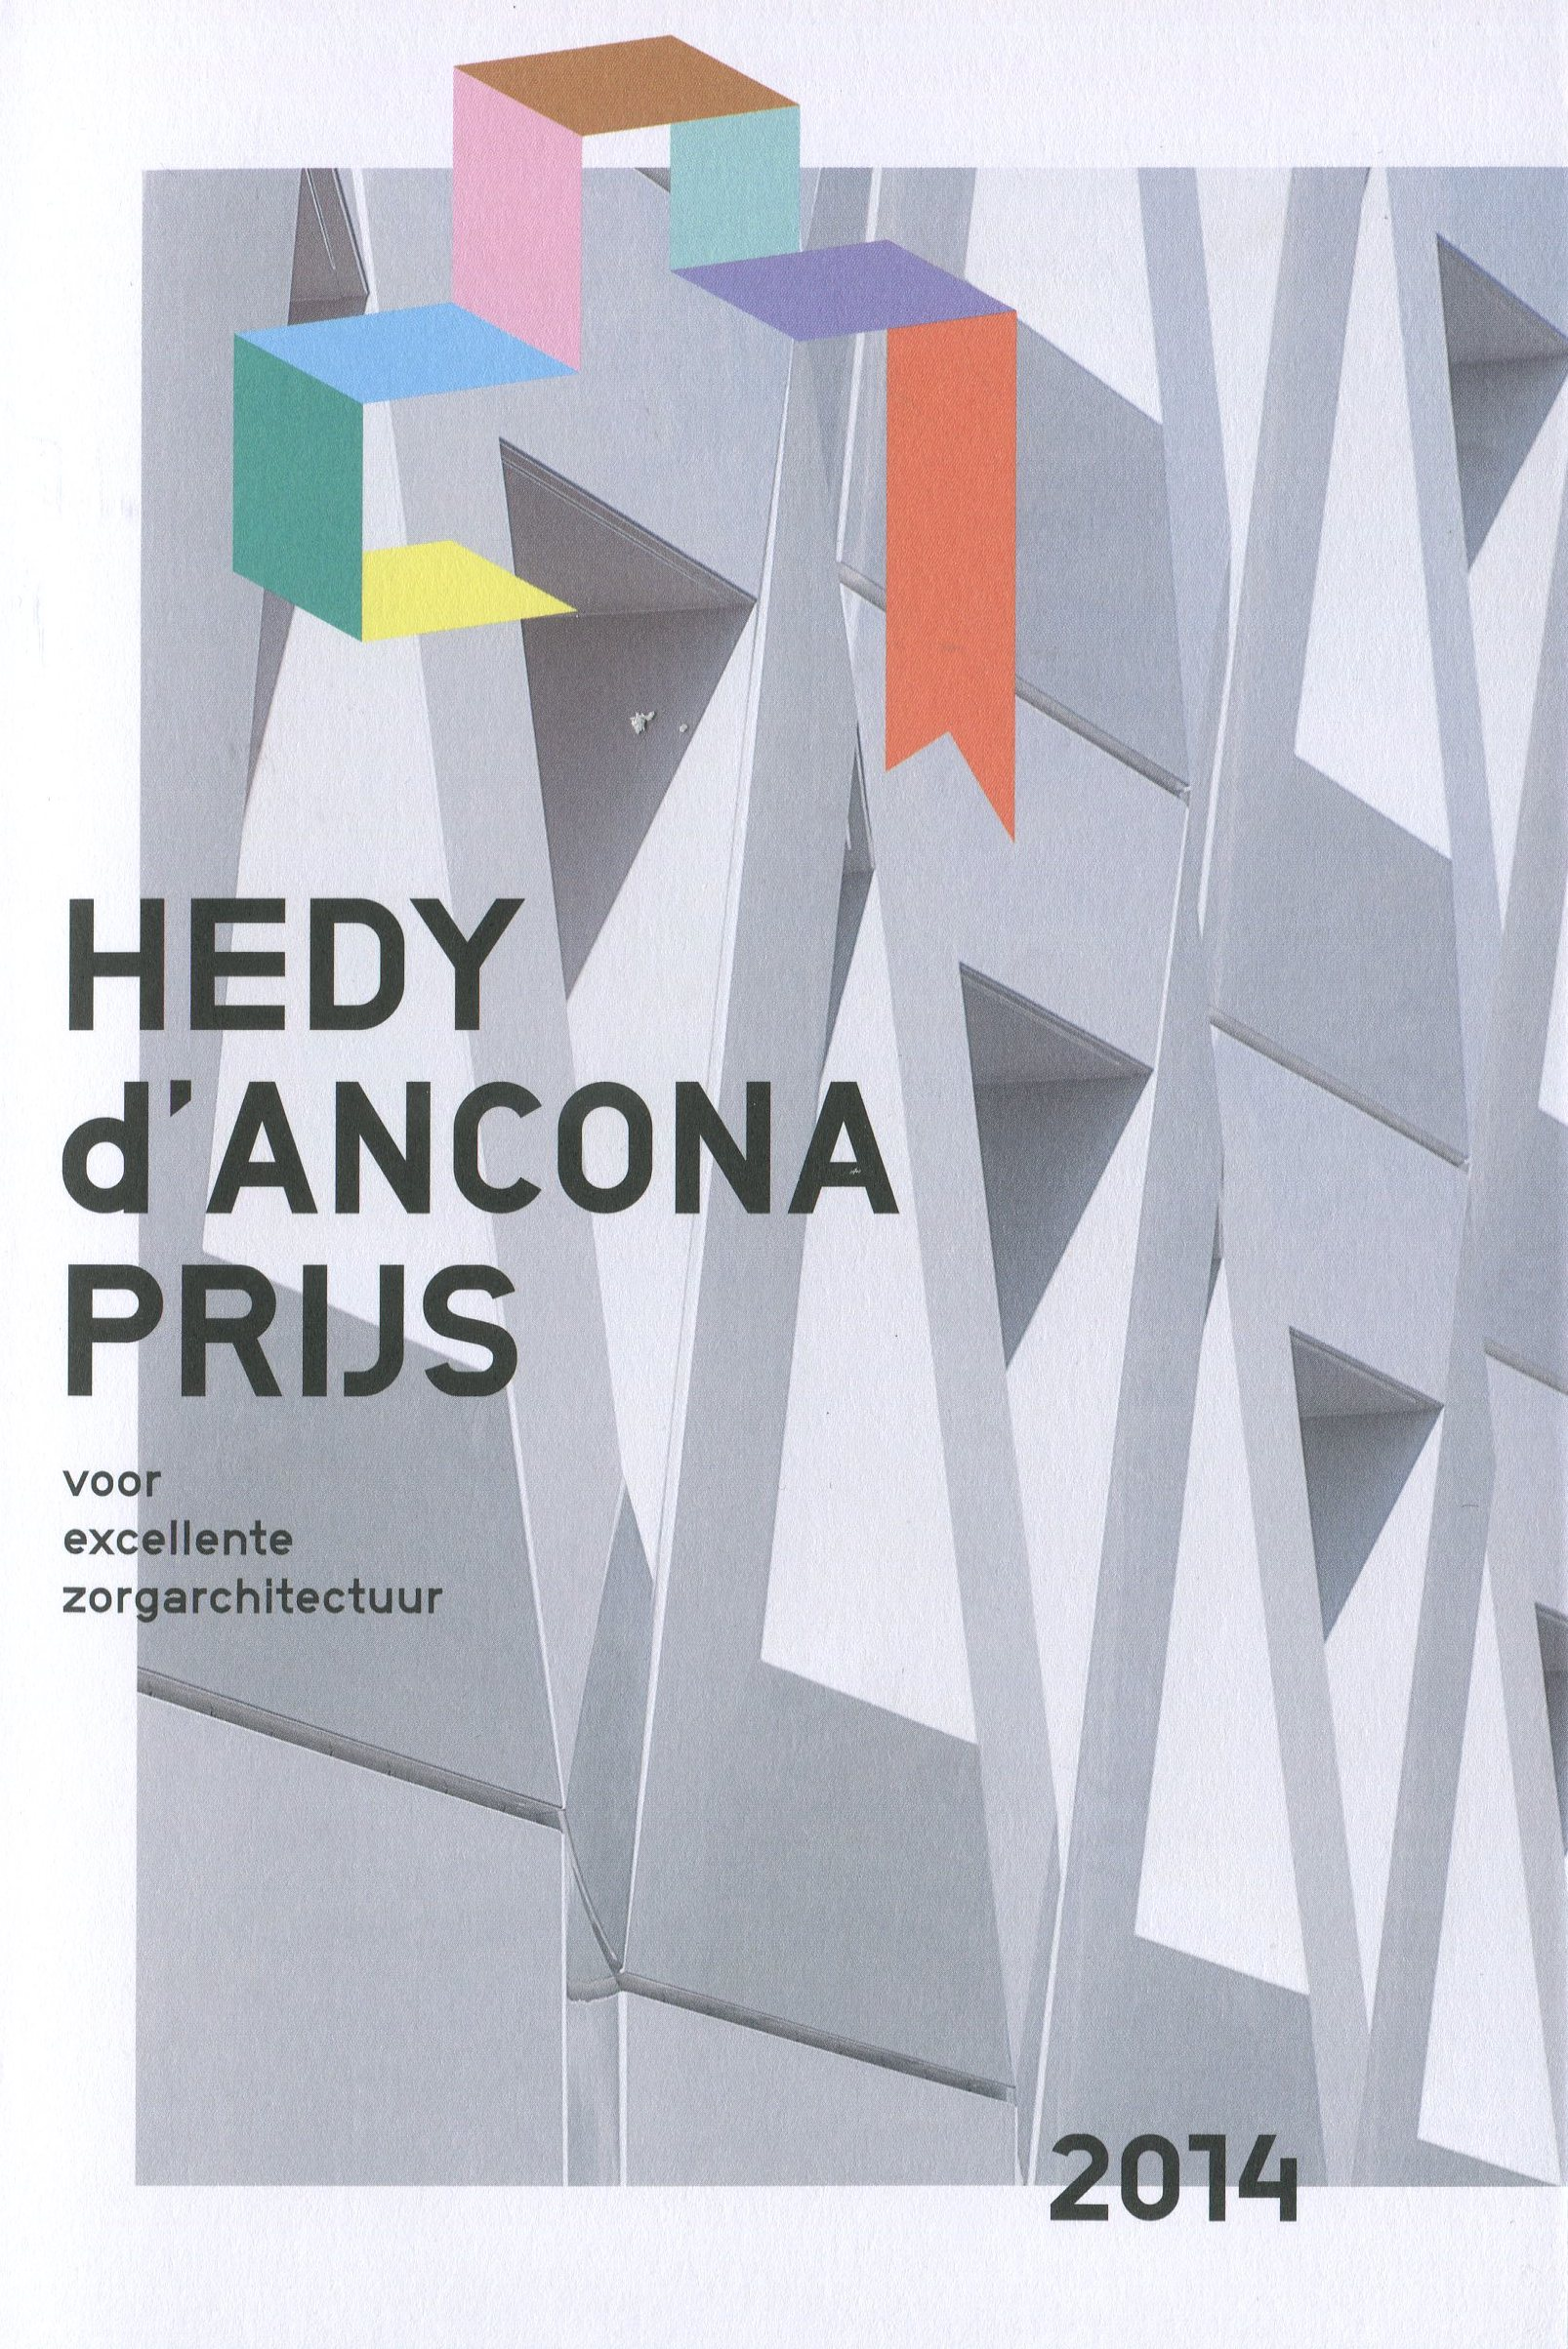 Essay contribution by Henri Snel for the Hedy d'Ancona award 2014 on excellent health care projects